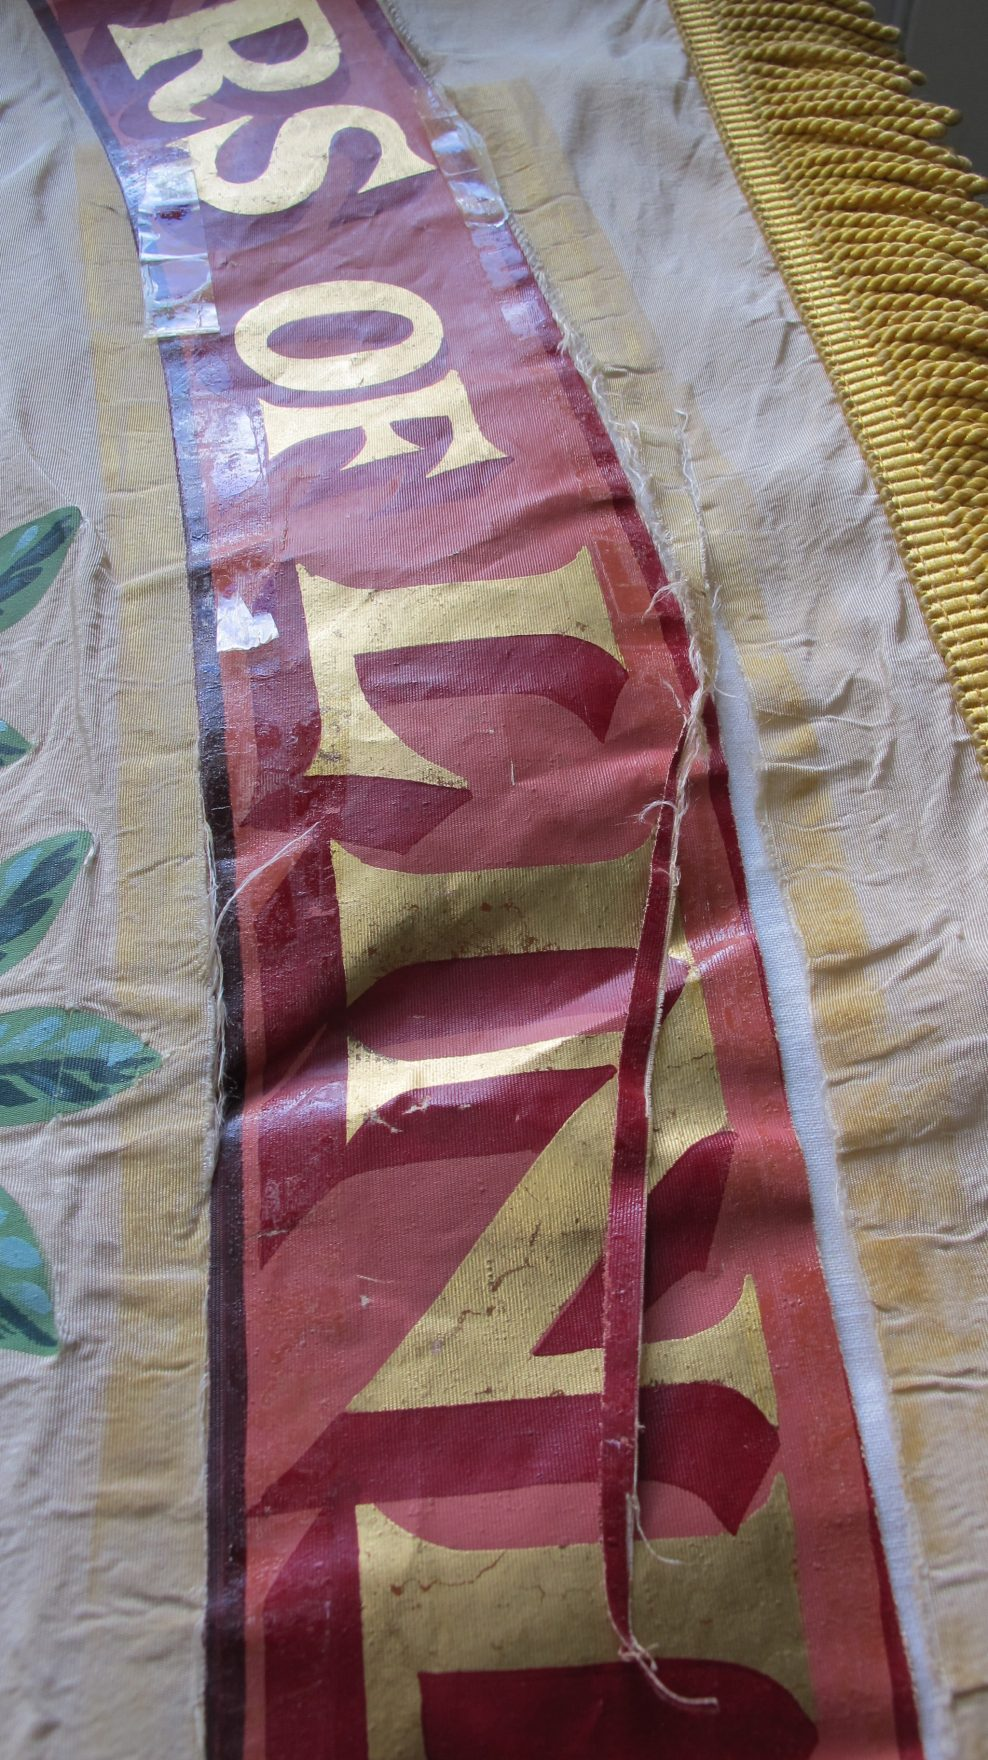 Dyers banner: conservation and mounting for display in a refurbished museum